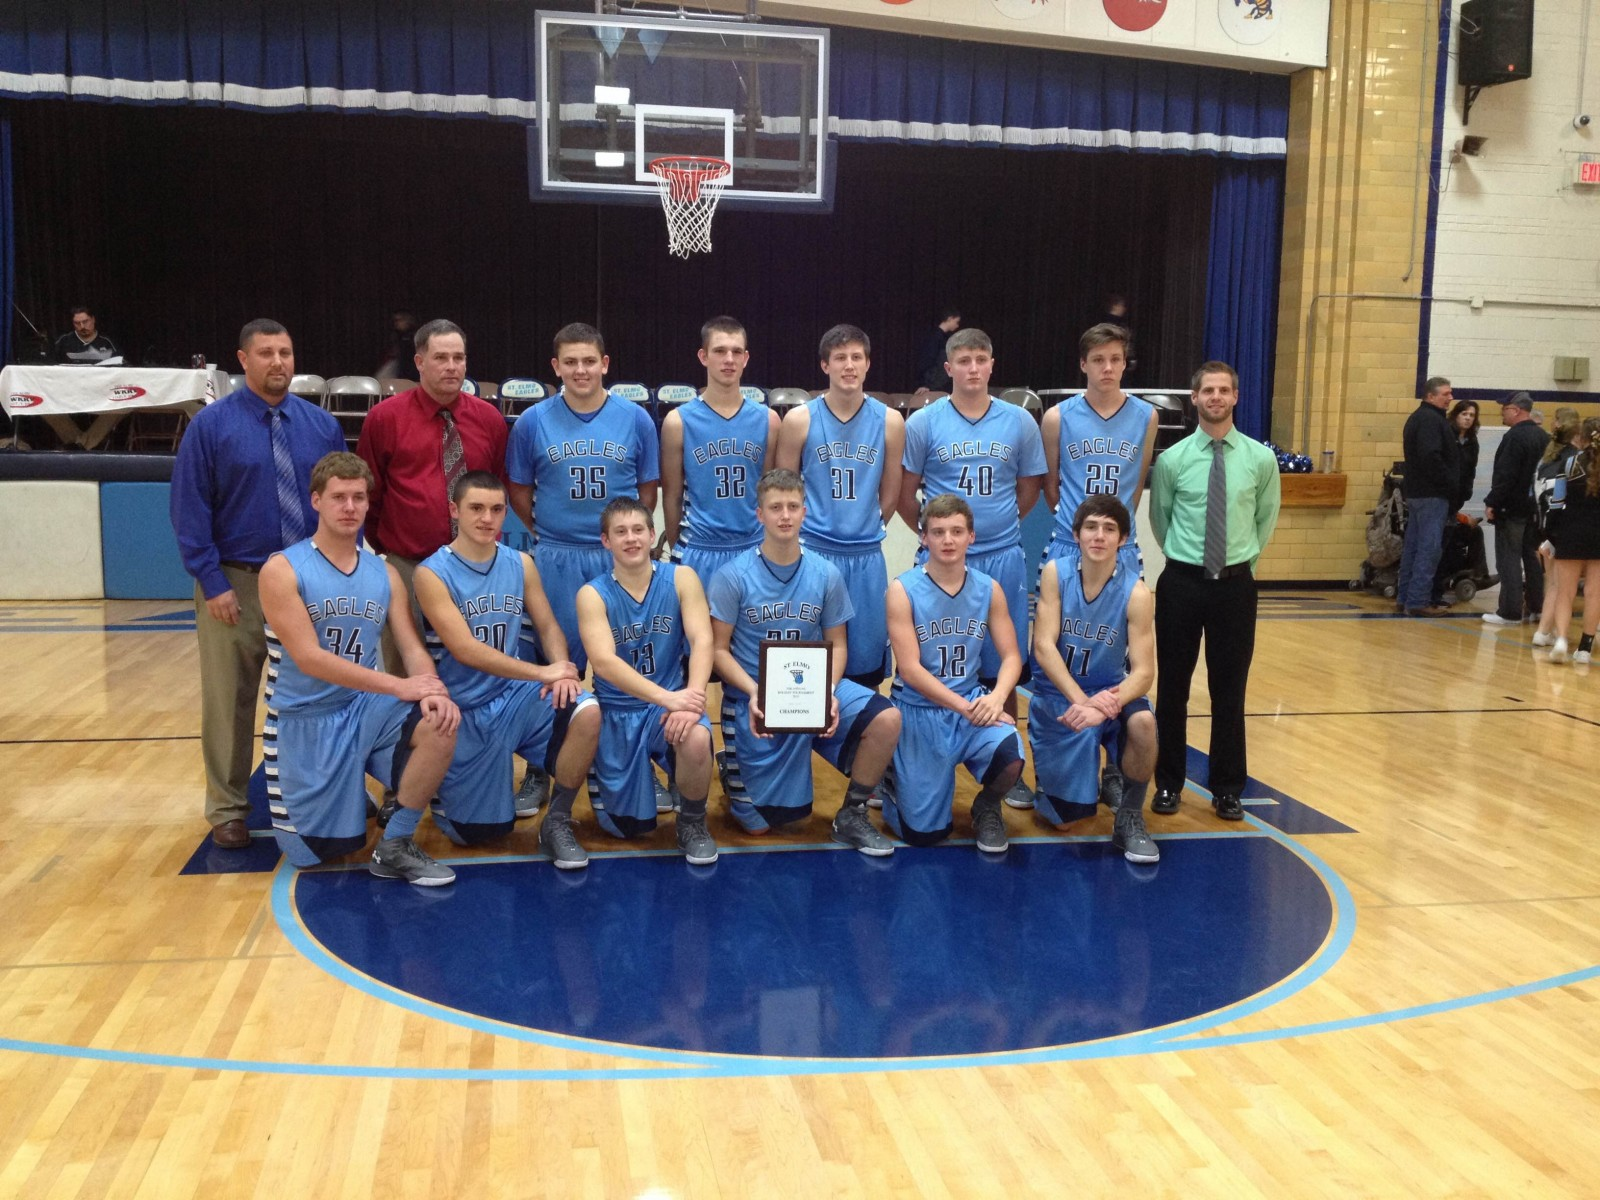 St. Elmo Holiday Tournament-Final Day-SEB wins championship, other scores